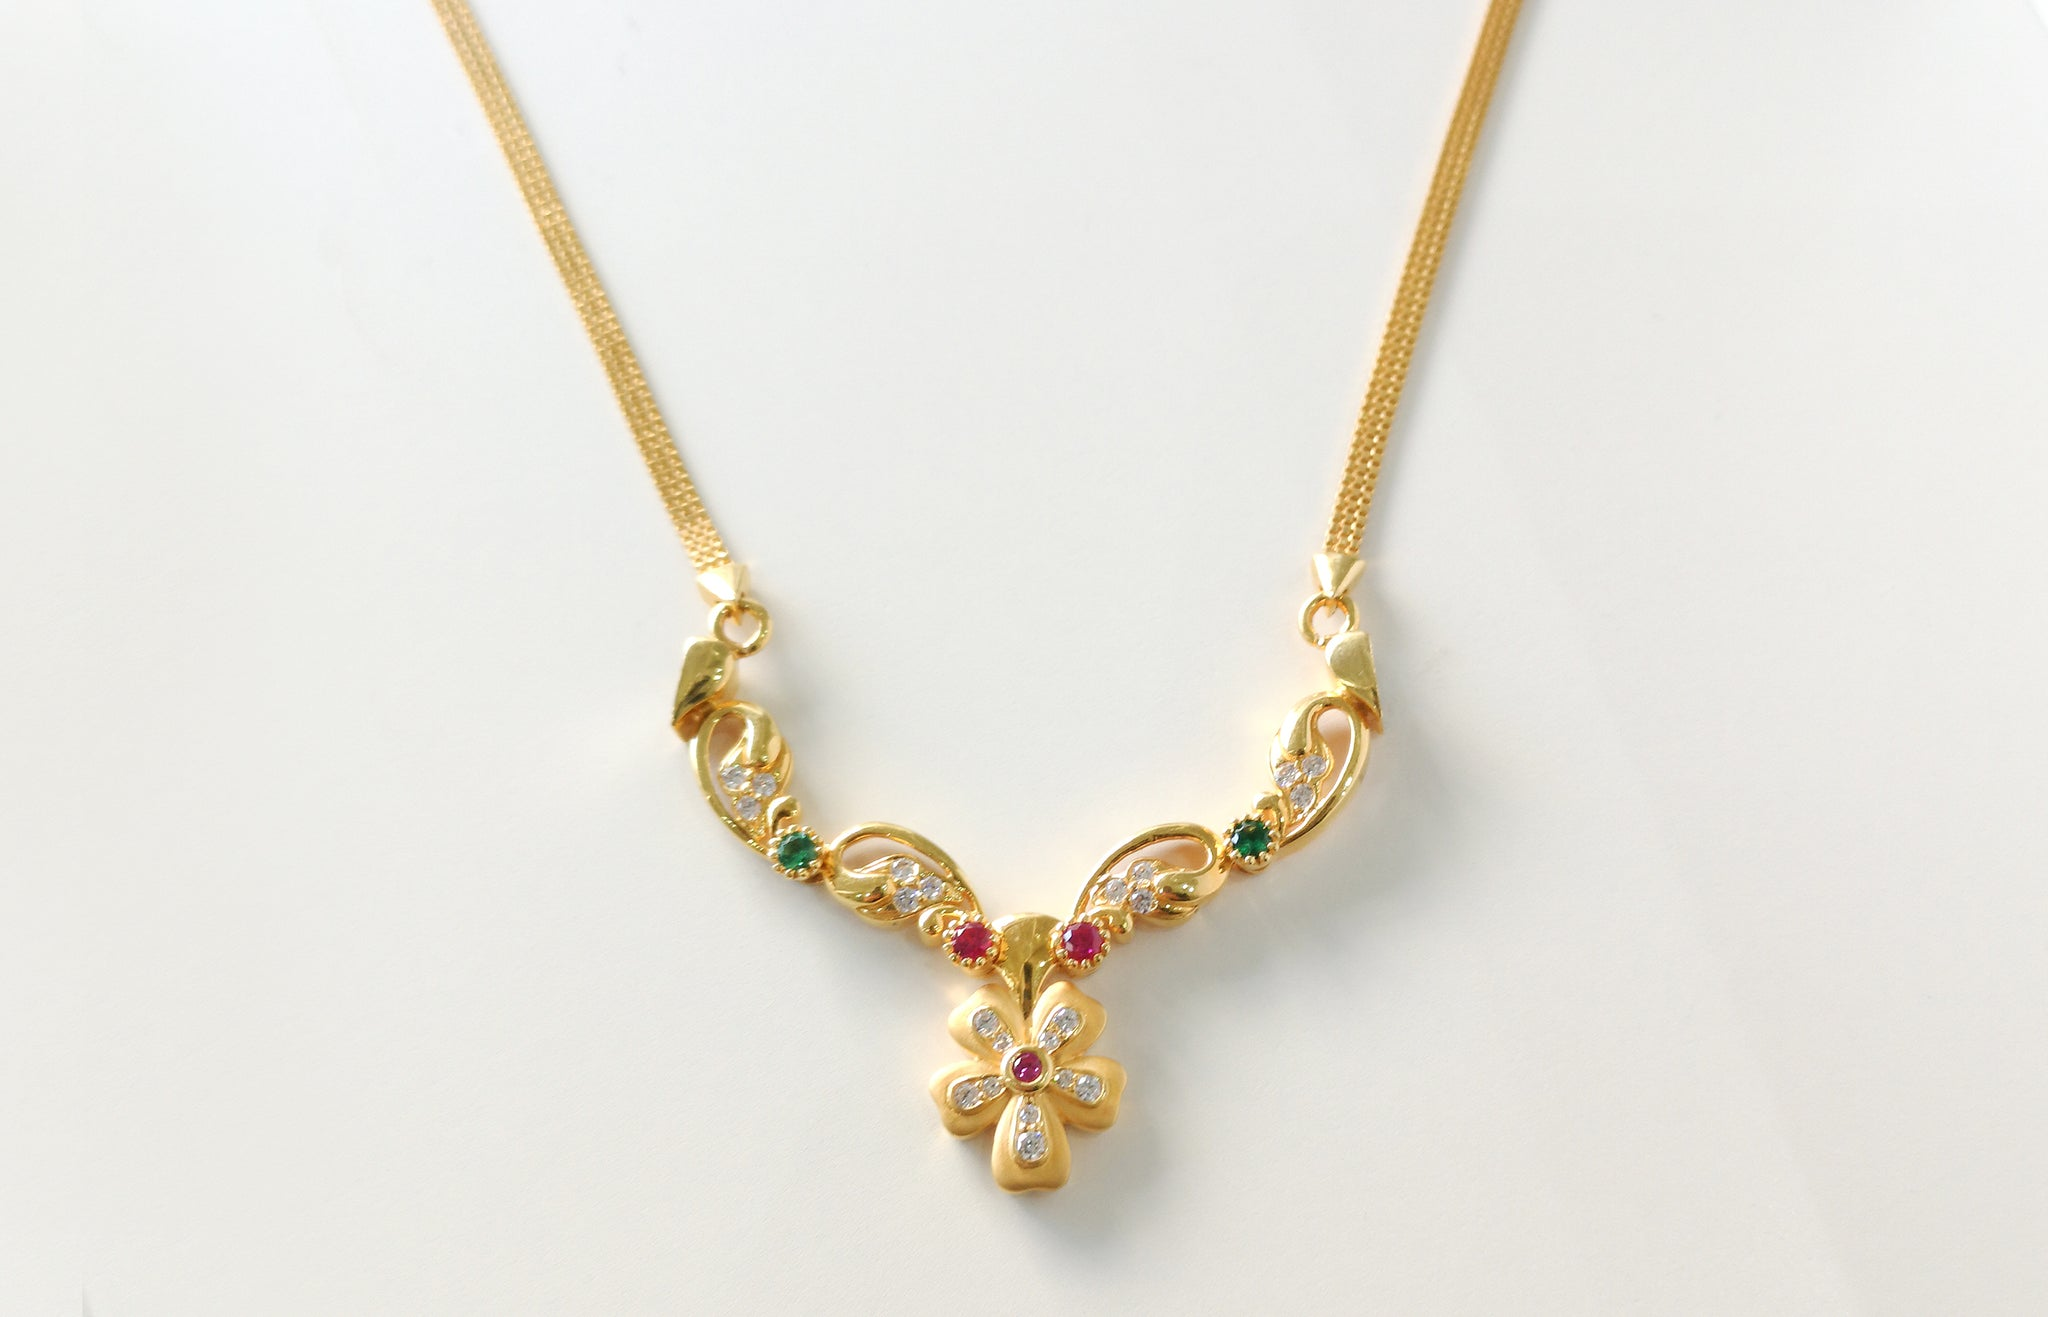 22ct Gold Cubic Zirconia and Coloured Stone Necklace 22COMXCARE